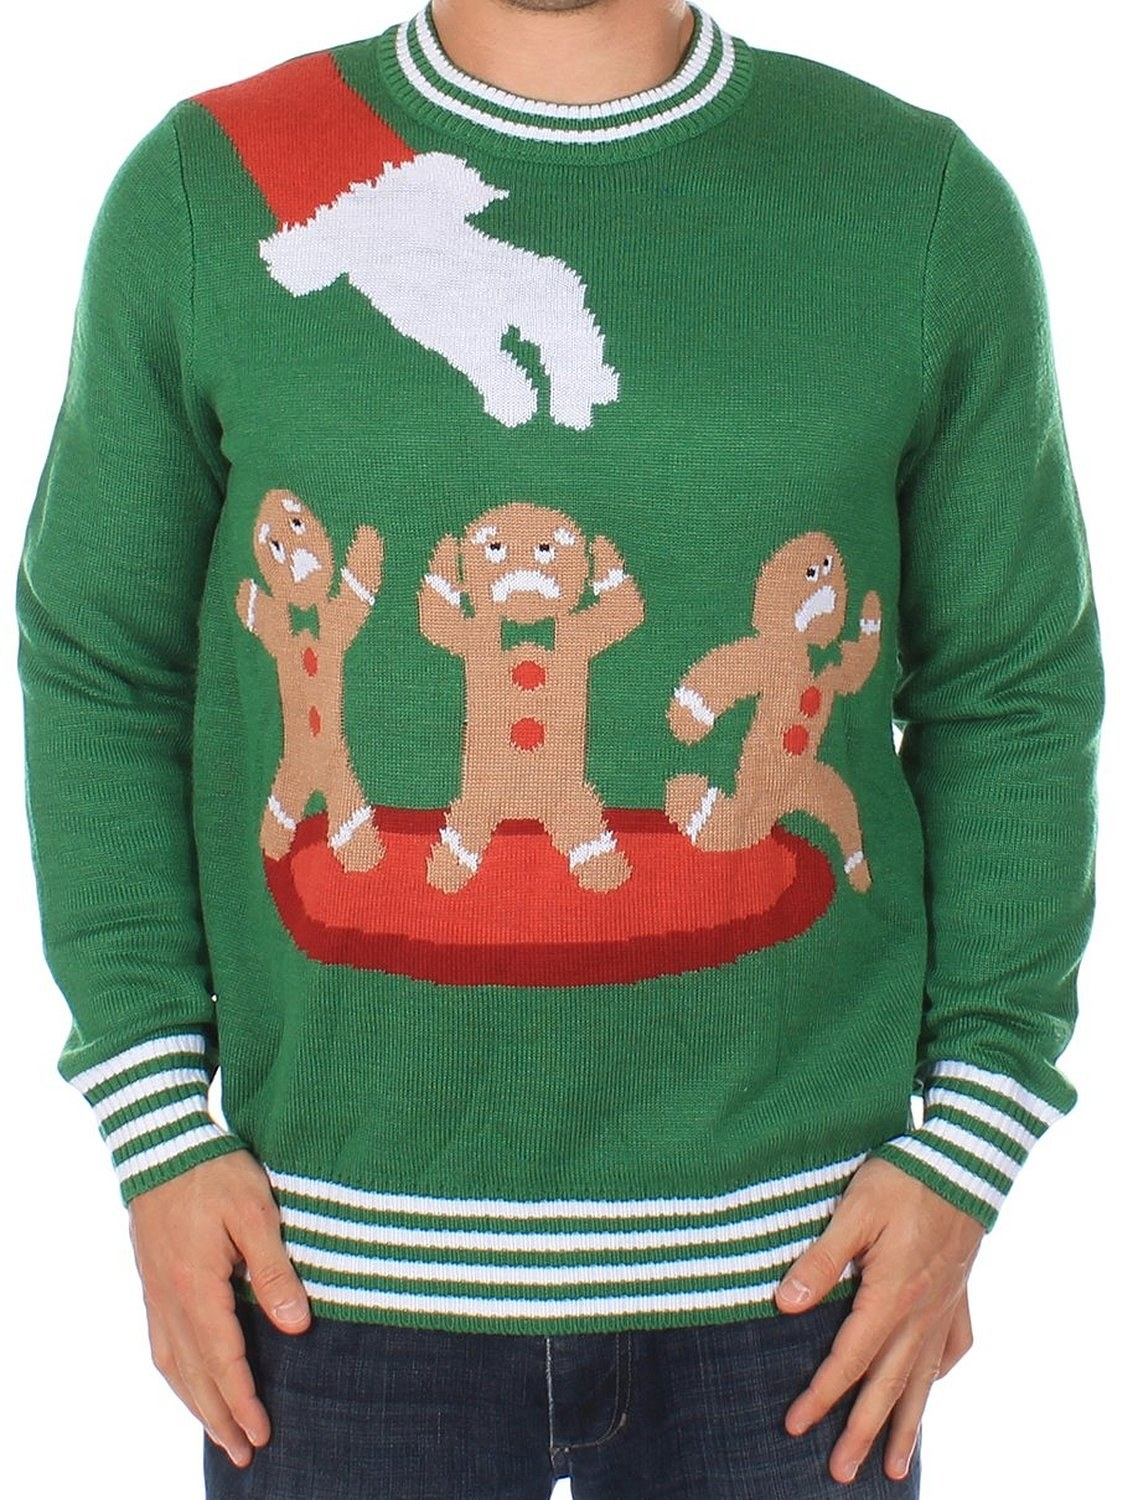 Where can i get an ugly christmas sweater